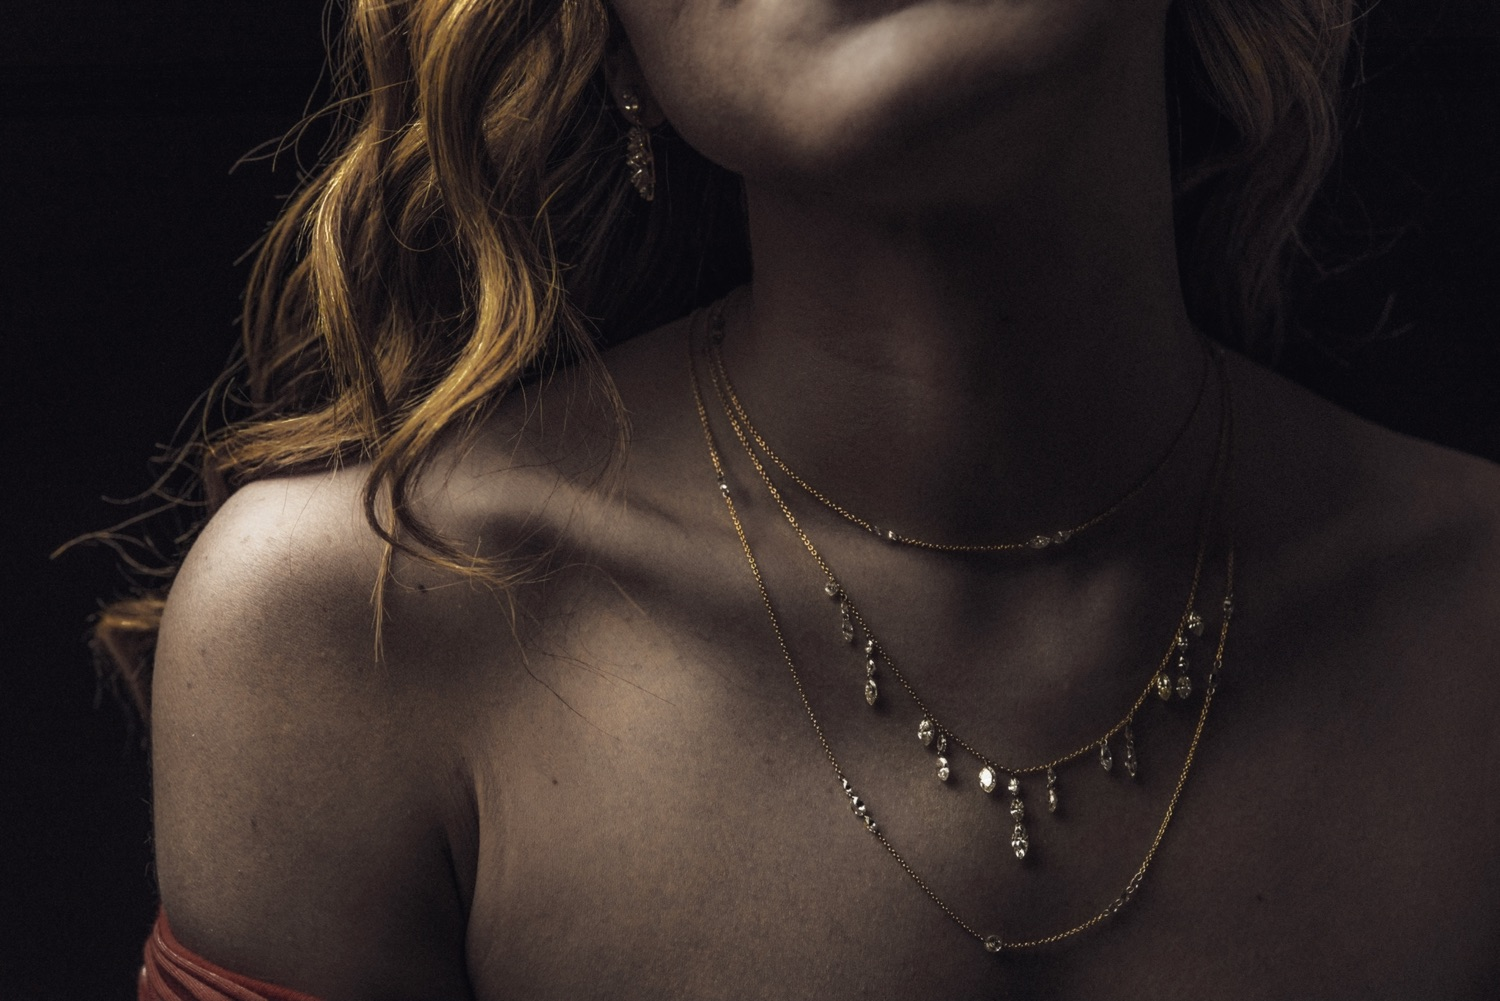 The Jewel - Todd Pownell Tap - Lookbook - Model Wearing Gold Necklaces